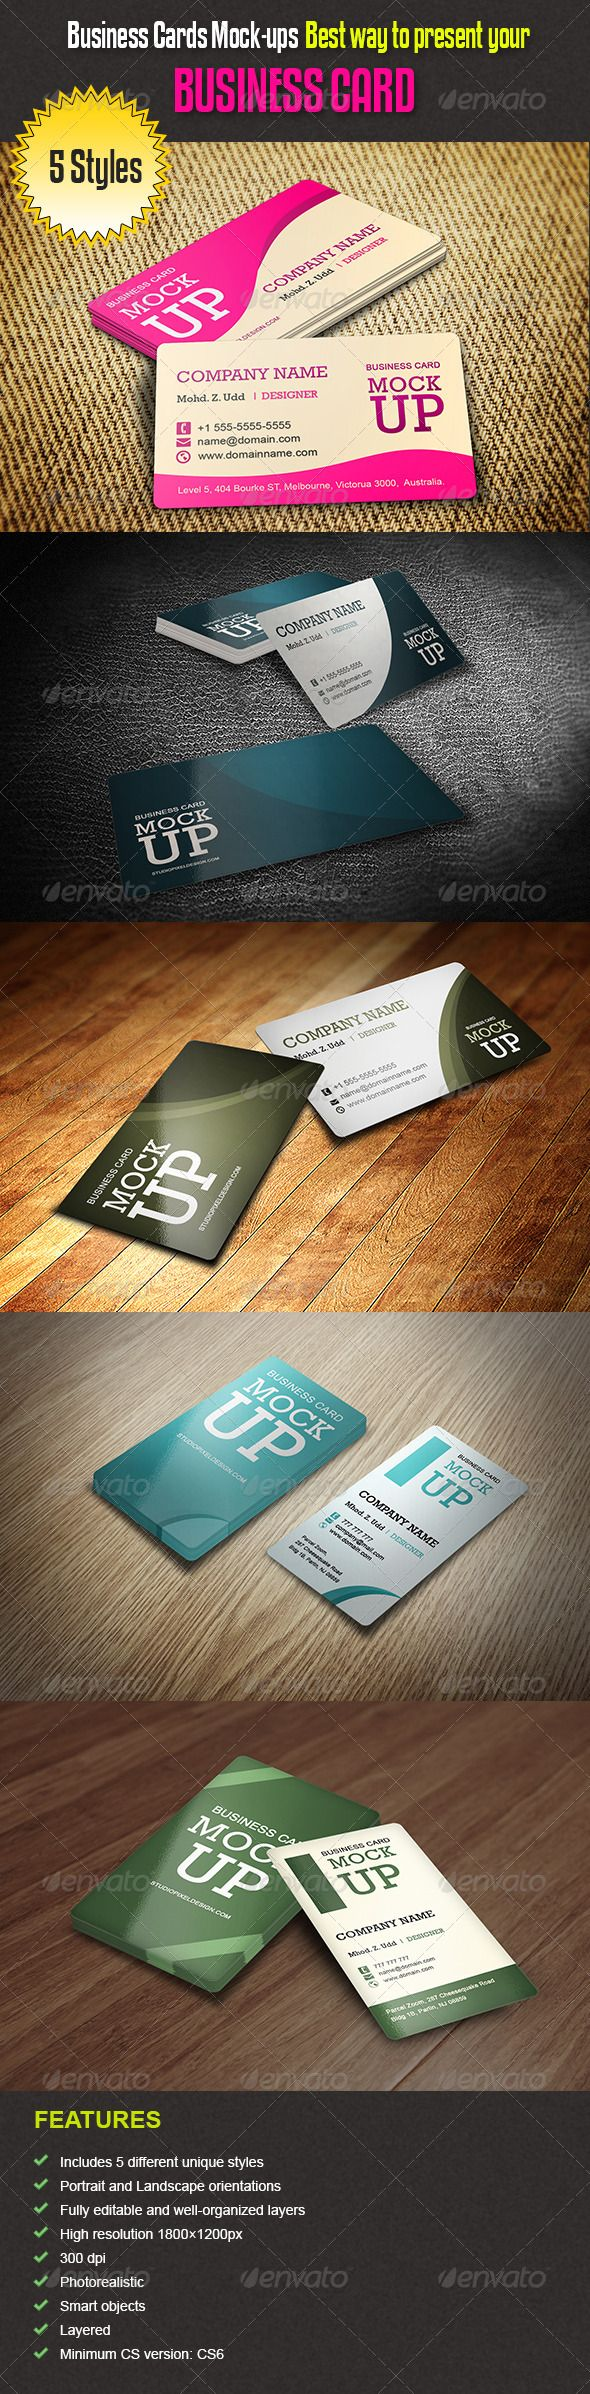 70 best Web - Business Cards images on Pinterest | Business cards ...